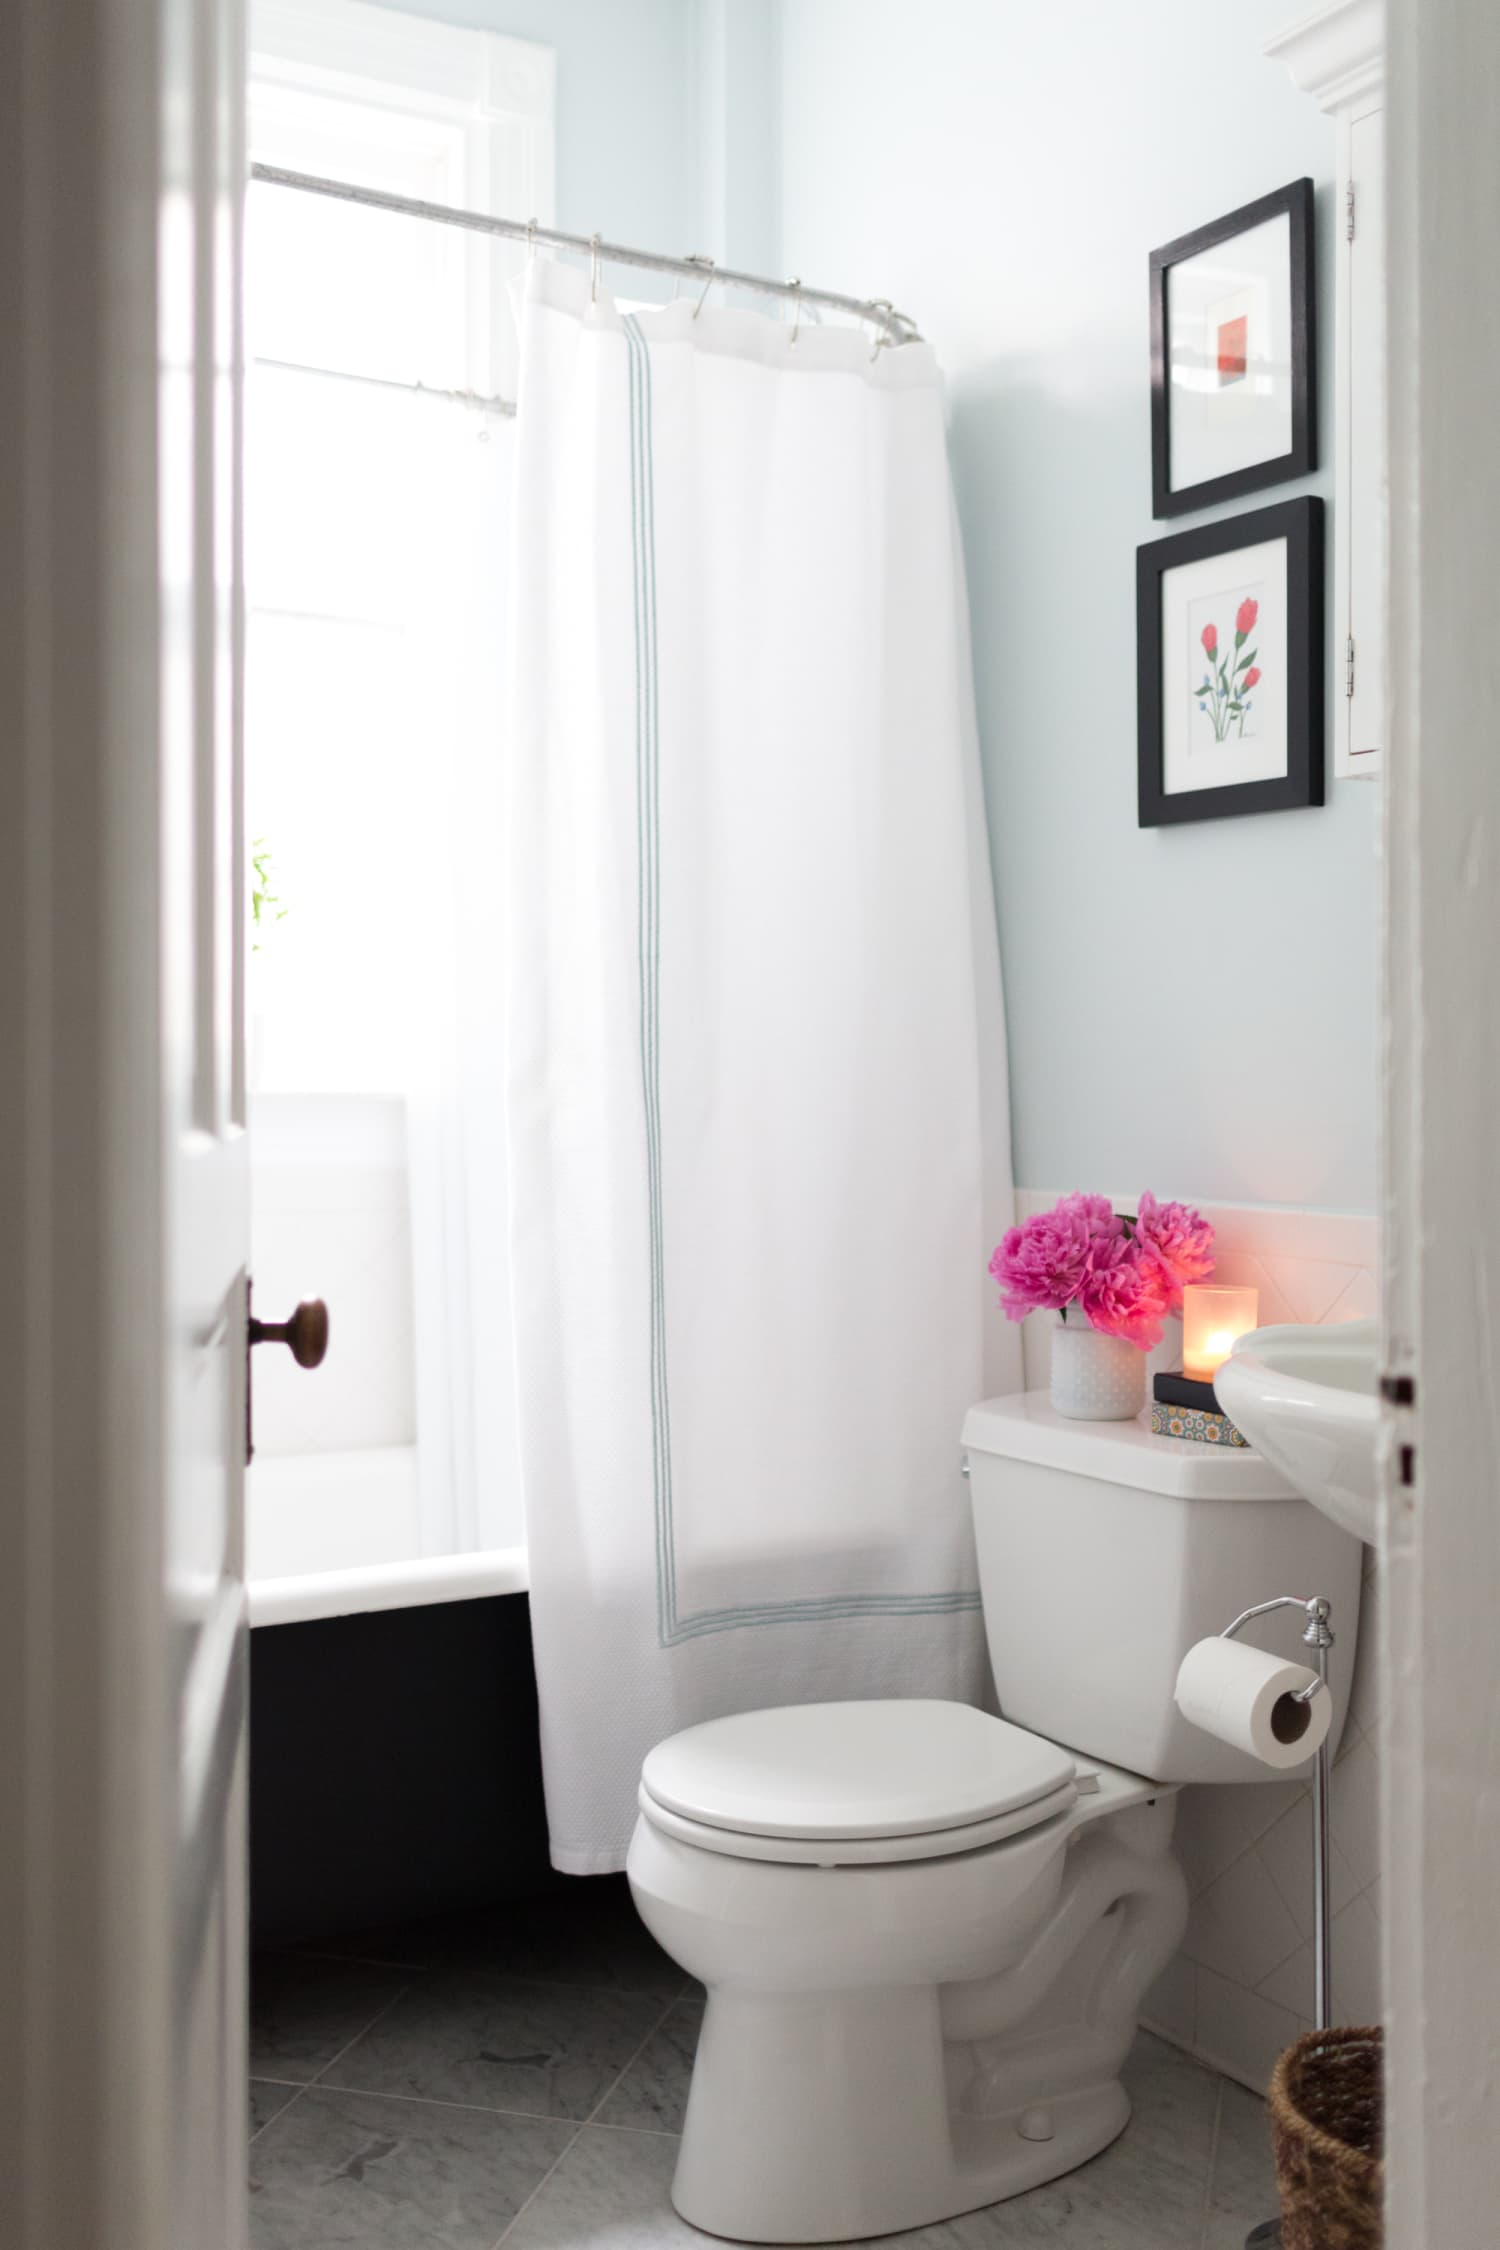 Cheap Bathroom Remodel Ideas That Look Expensive ...